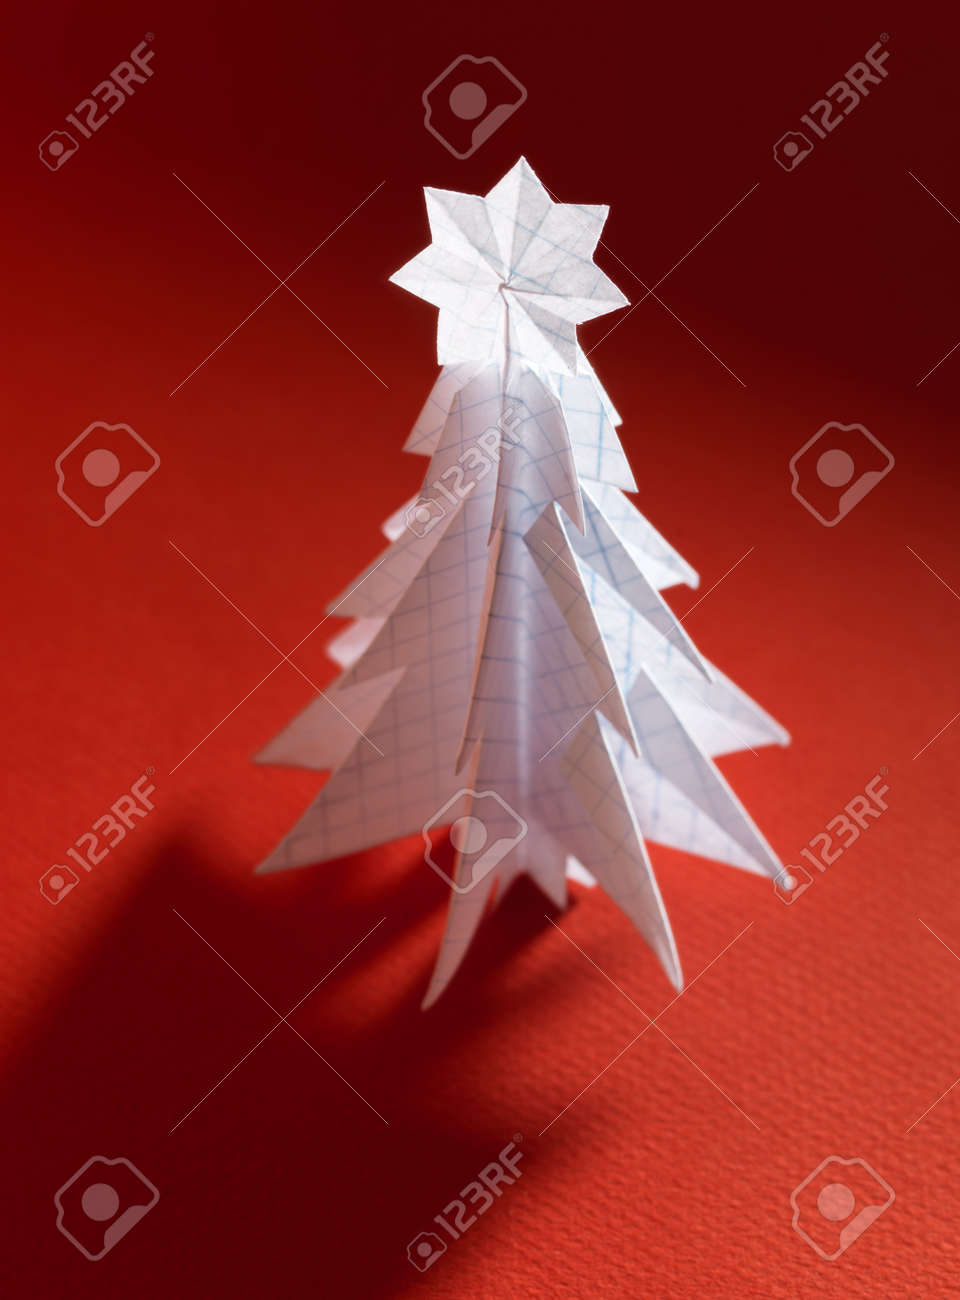 Christmas Trees Made Of Paper On Red Background. Christmas Card ...